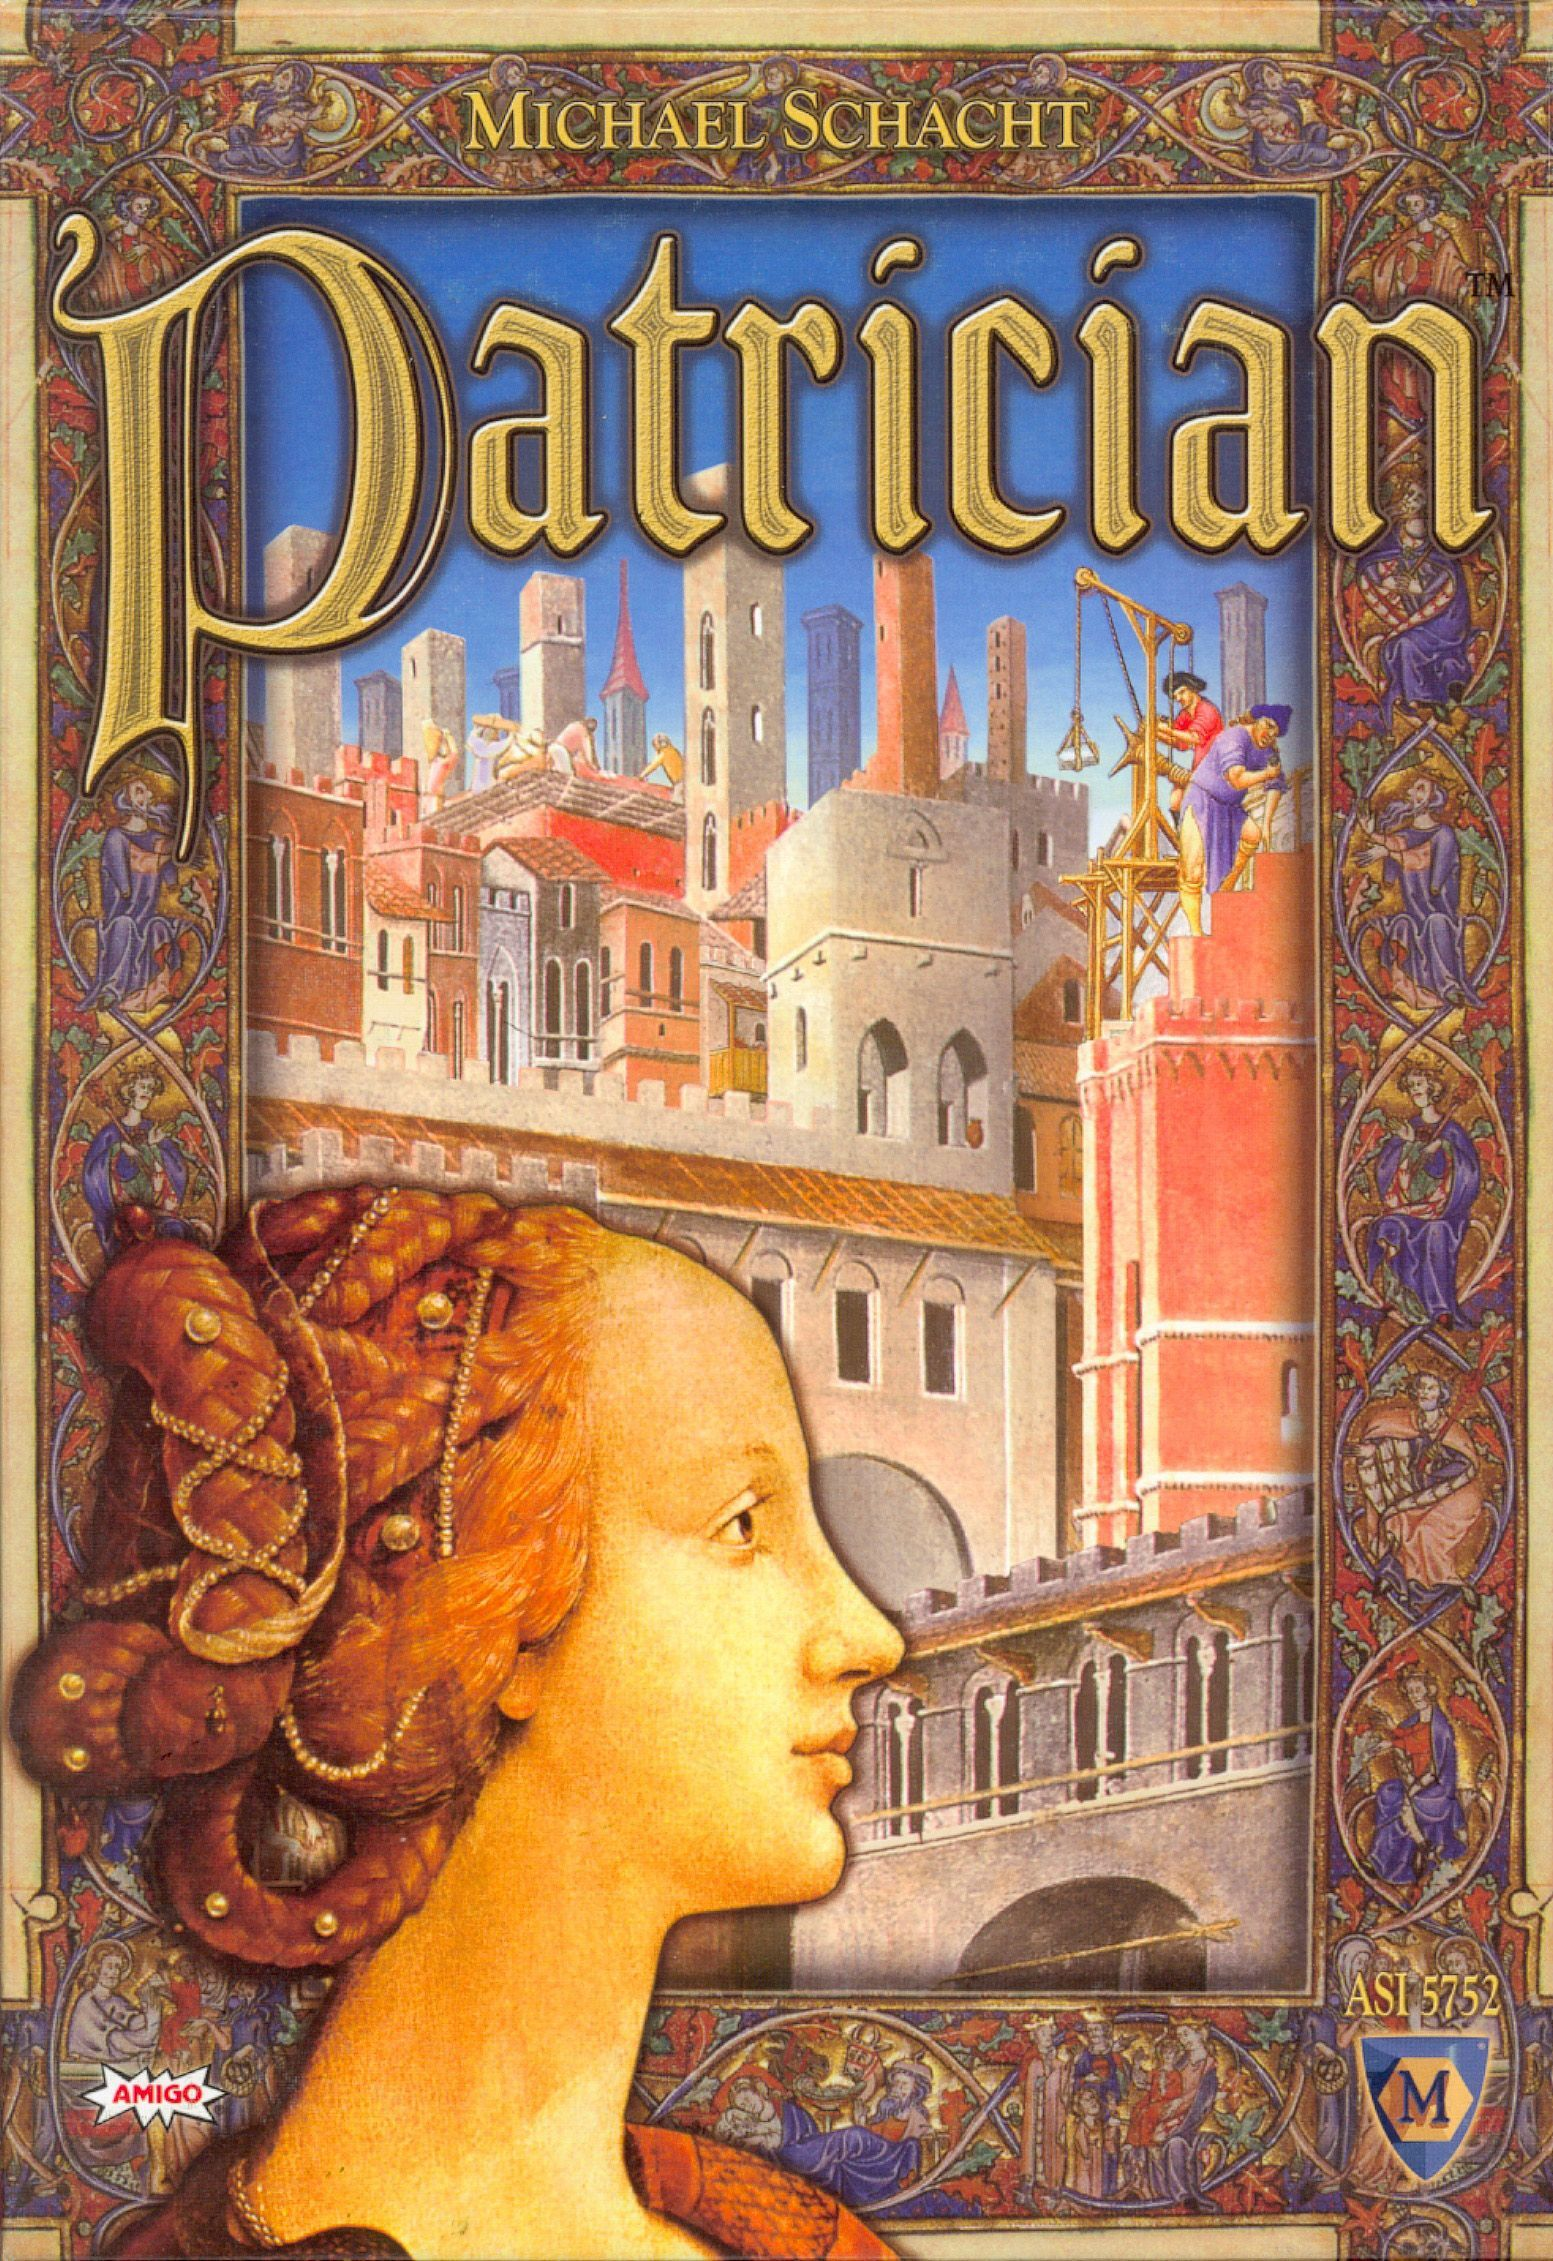 Main image for Patrician